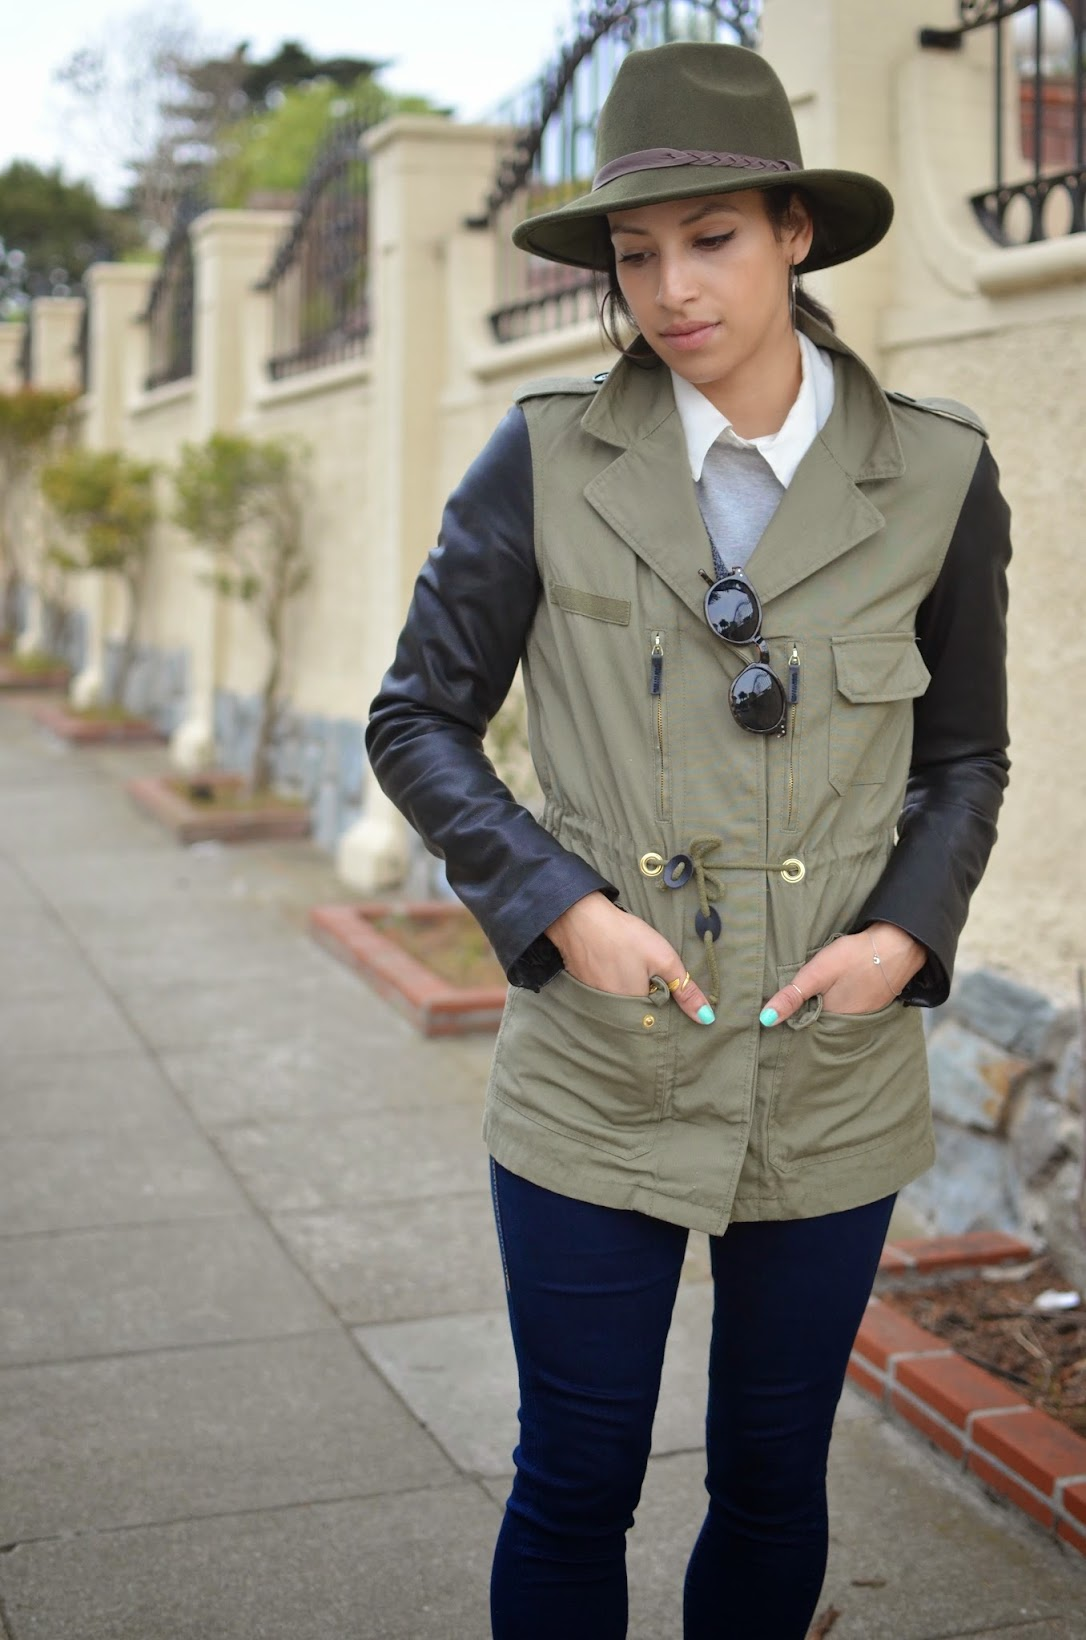 D'orsay flats, 10 Crosby D'Orsay Flats, Cargo jacket, Mixed Media Zara jacket, PacSun Fedora, Olive Fedora, Collared shirt, True Religion Skinny jeans